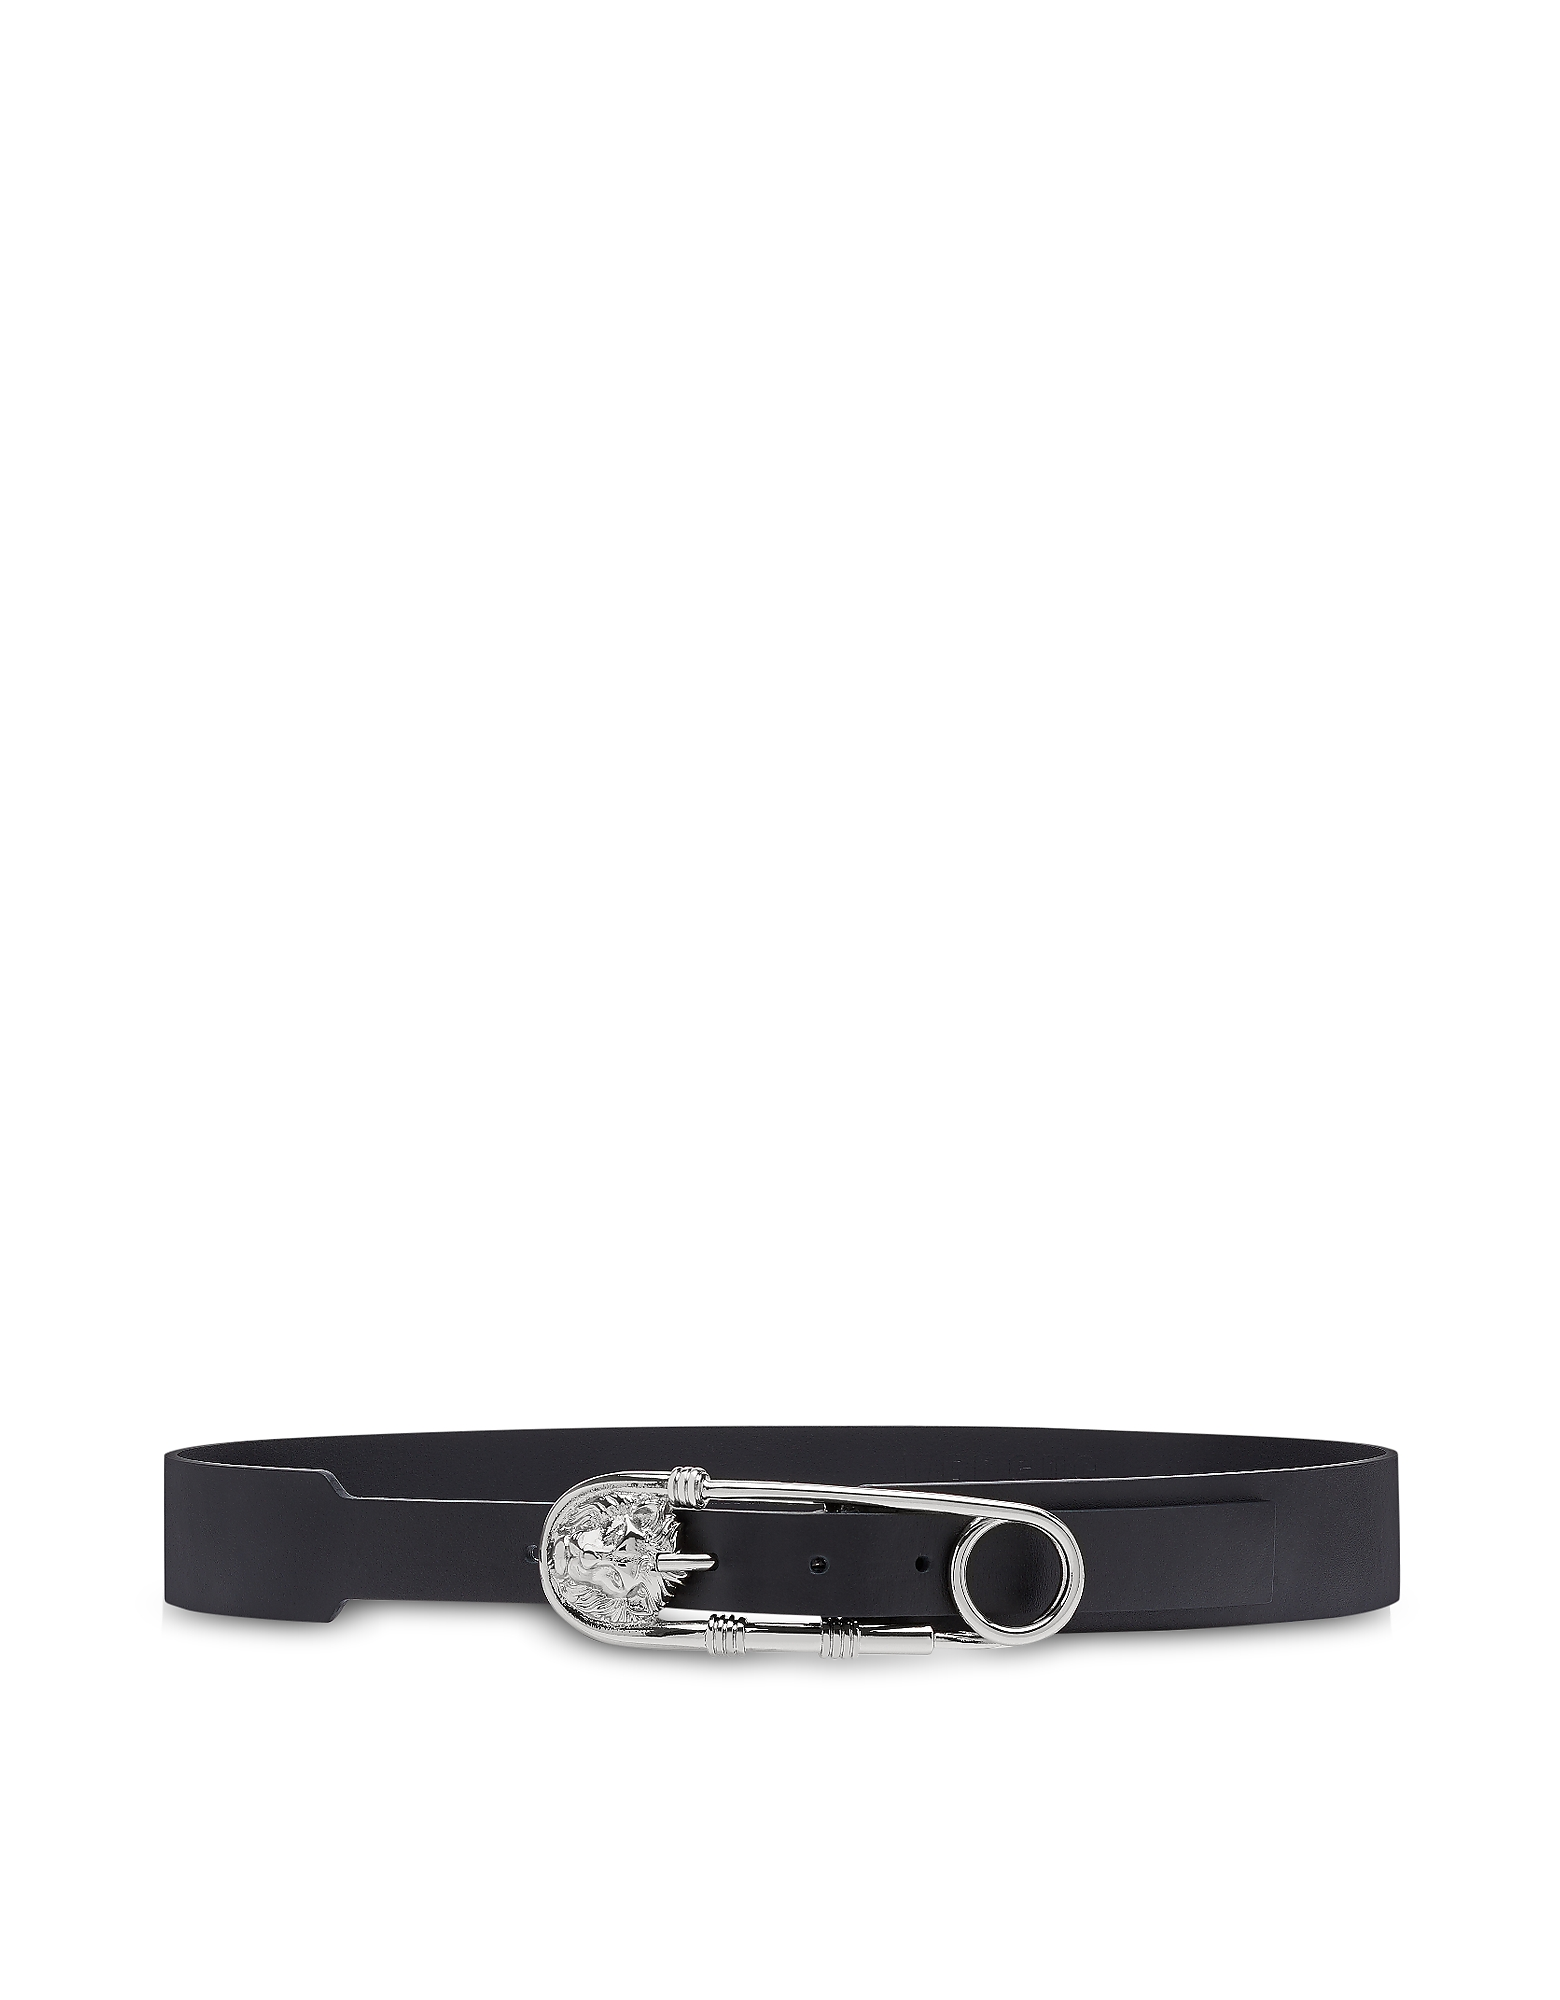 Safety Pin Black Leather Men's Belt